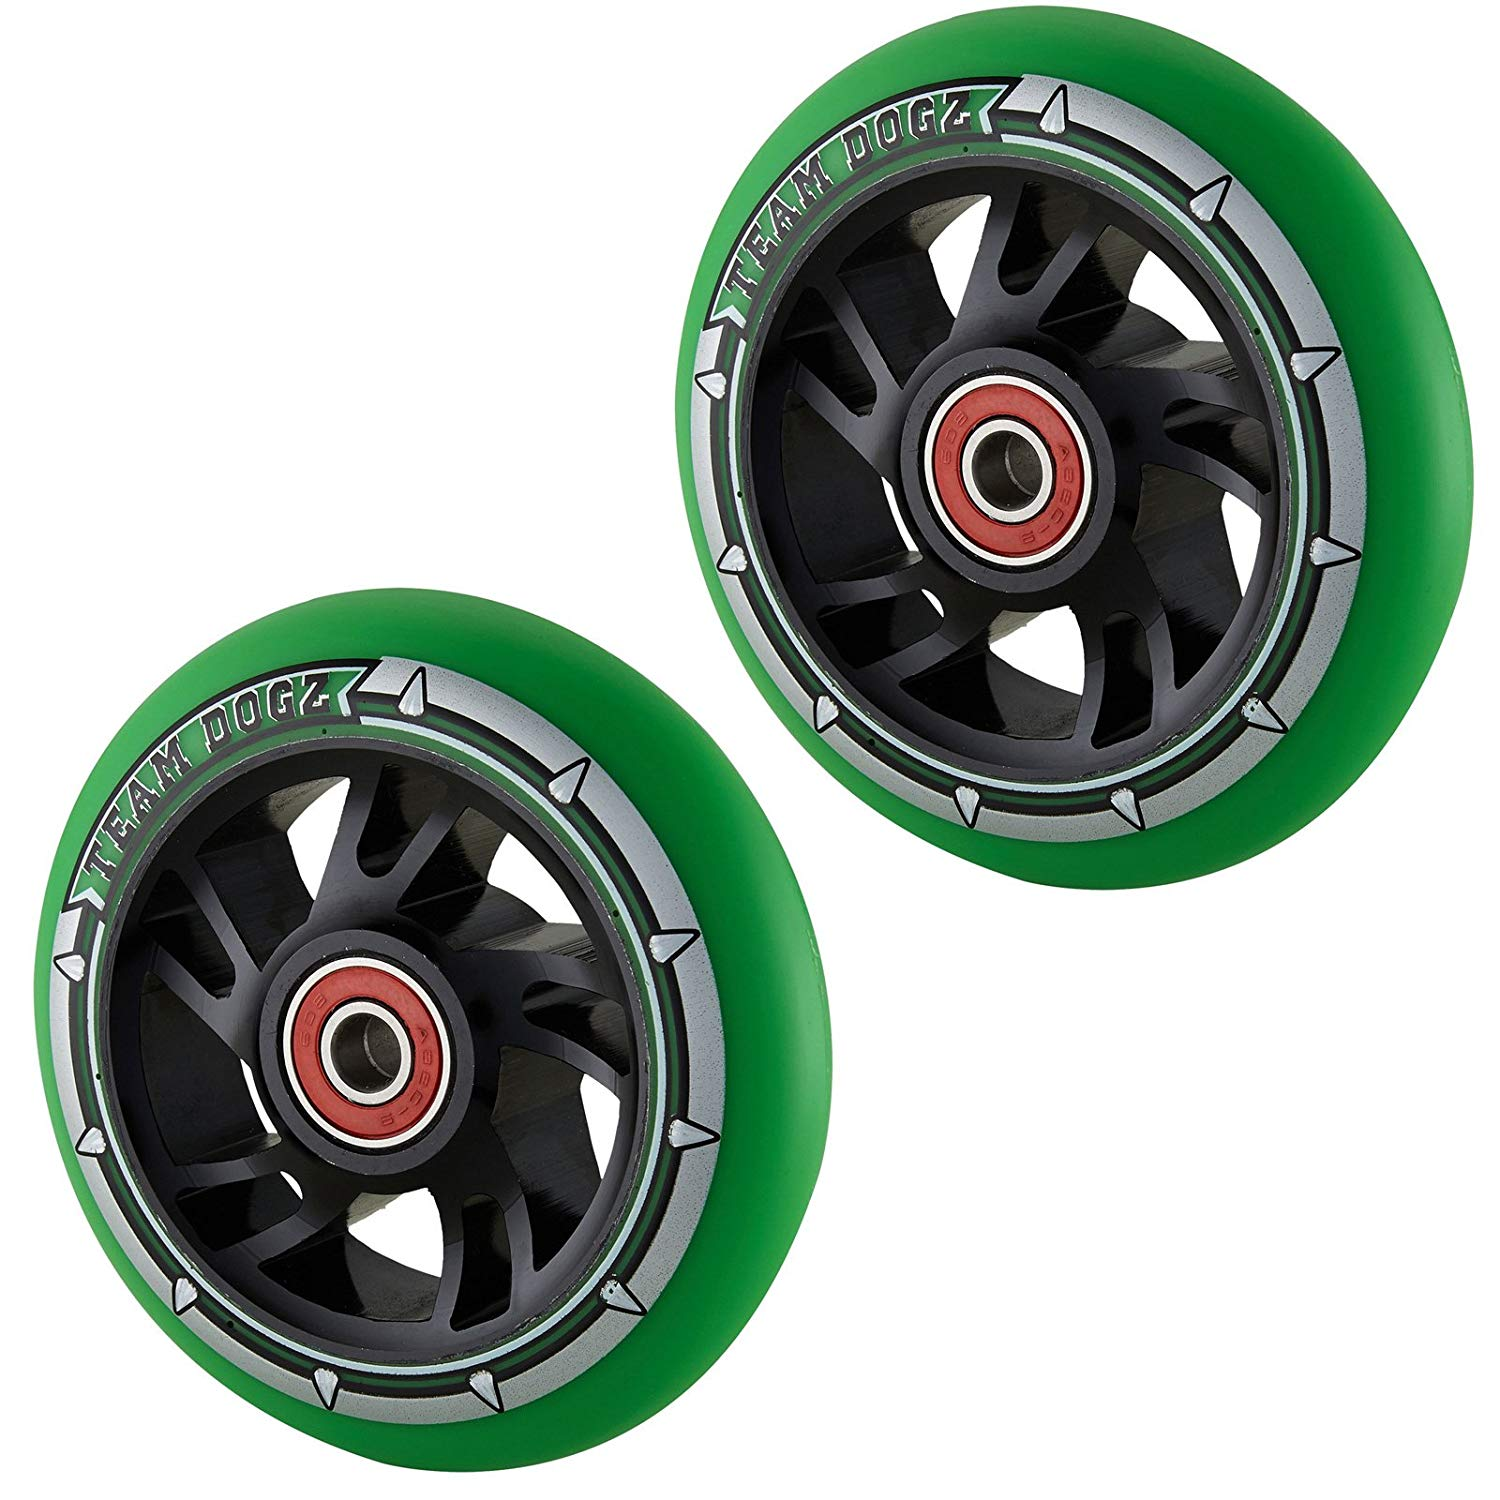 Team Dogz 100mm Swirl Scooter Wheels - Black Cores with Neon Green Tyres (Pair)